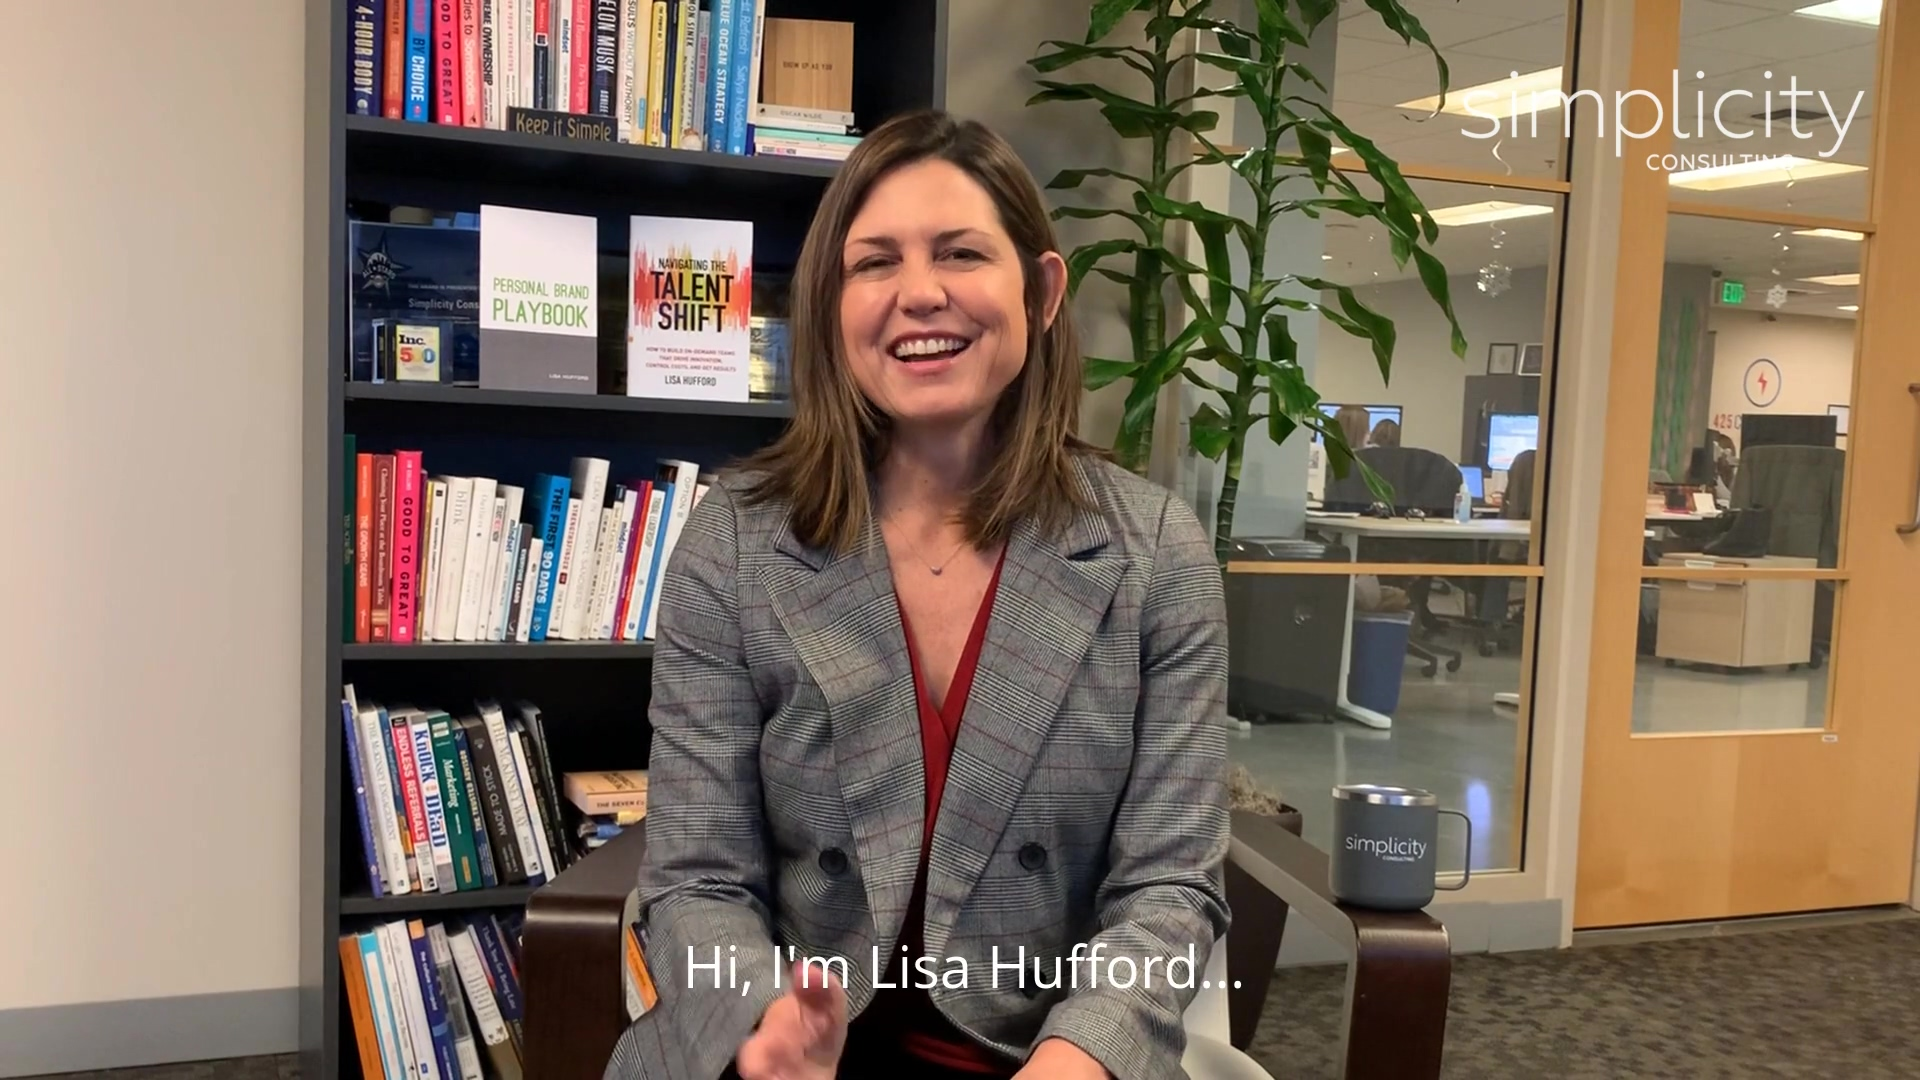 Personal Brand - Simplicity - Lisa Hufford - Confidence Hack (horizontal)